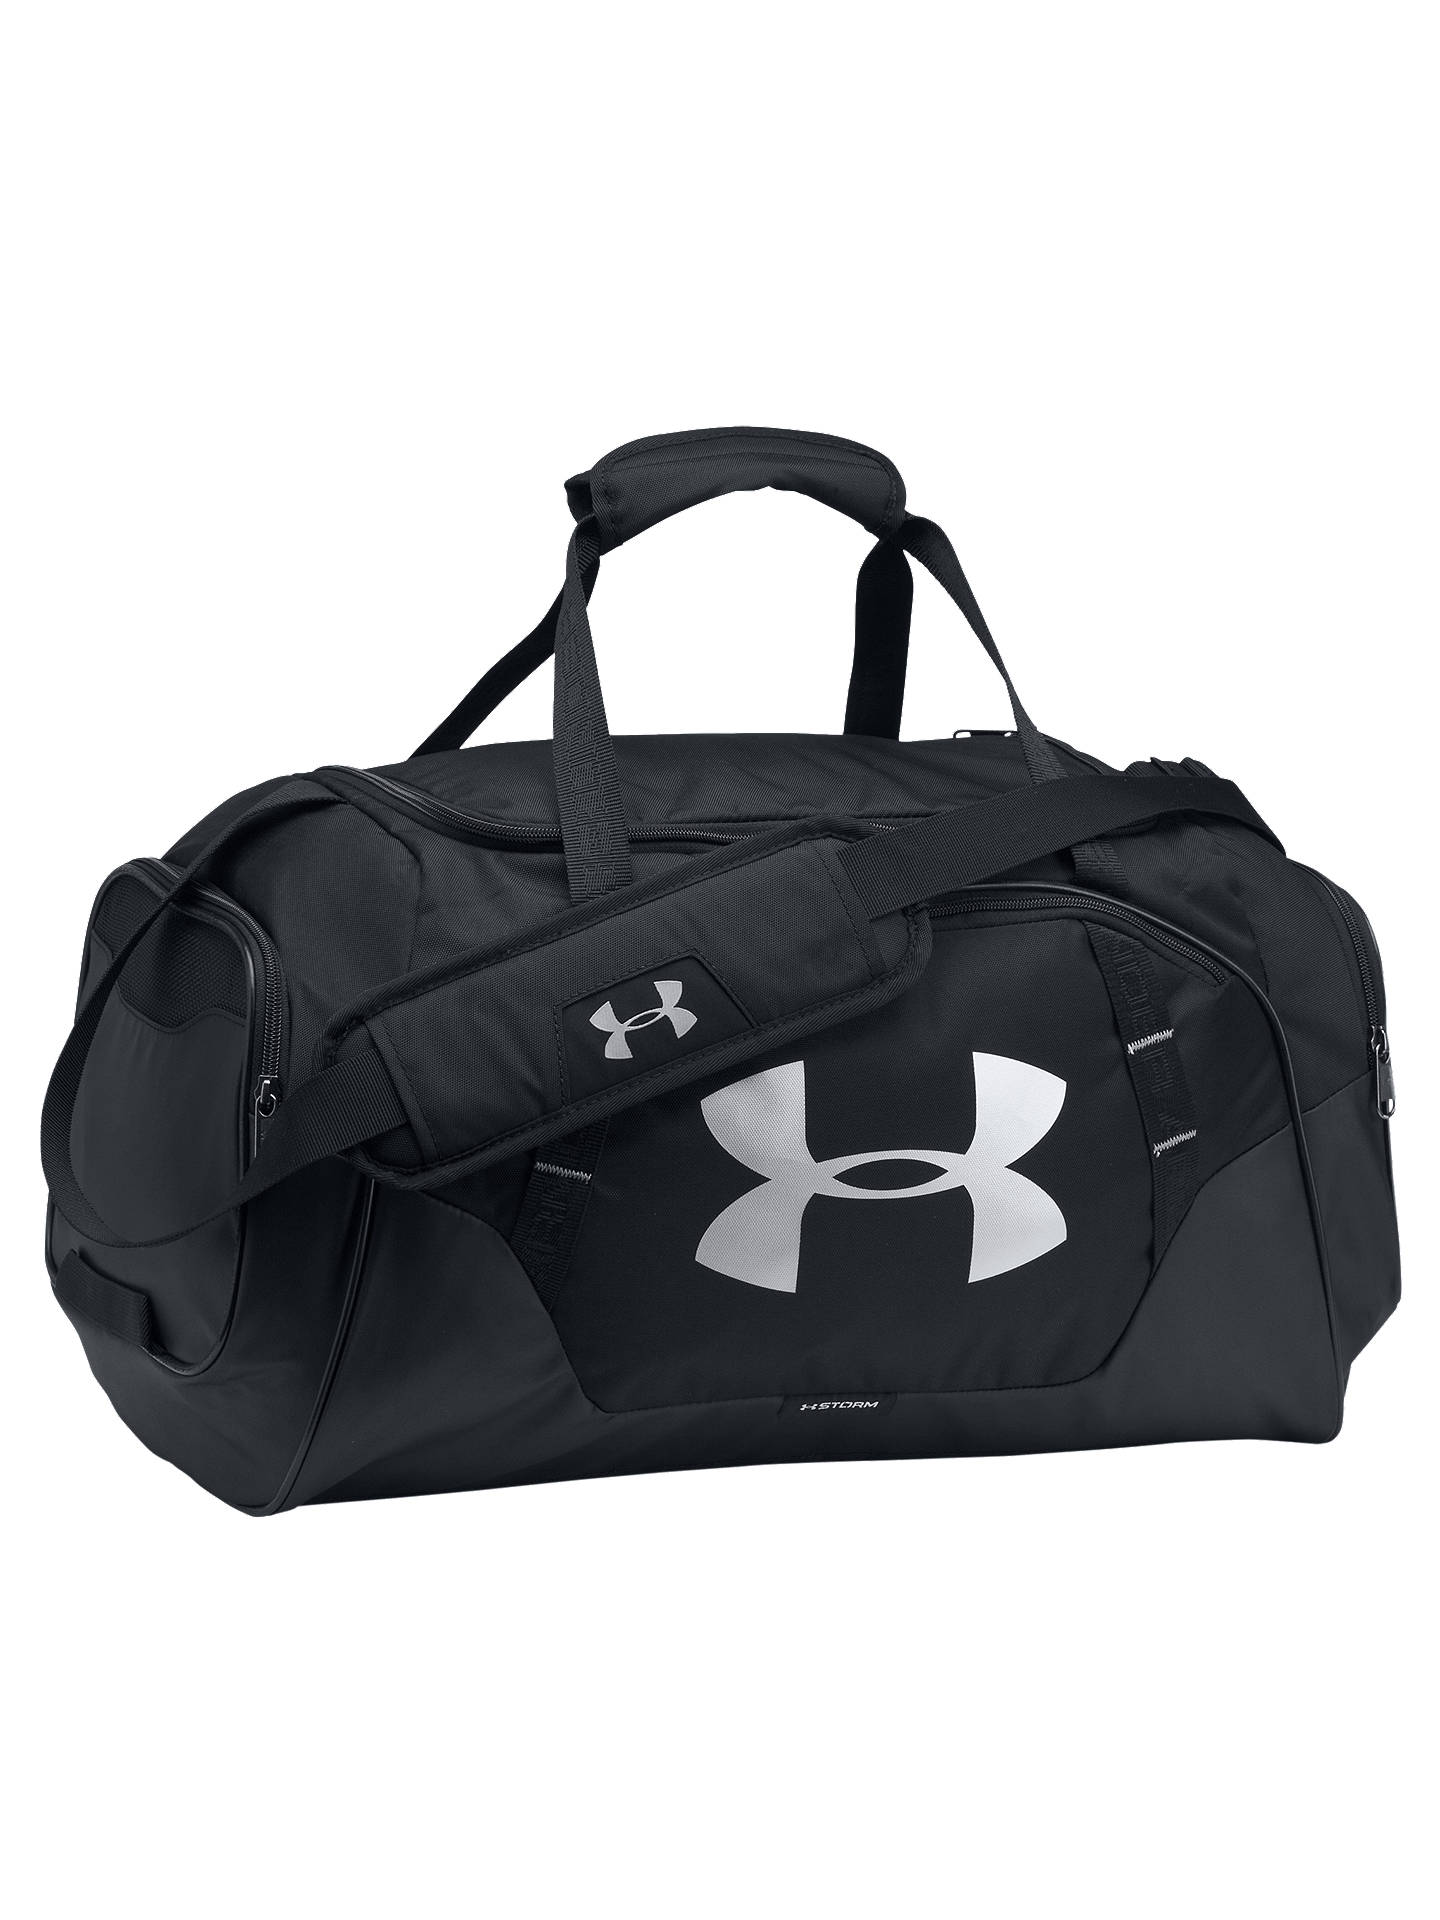 8c8edff8967f5 Buy Under Armour Storm Undeniable 3.0 Large Duffel Bag